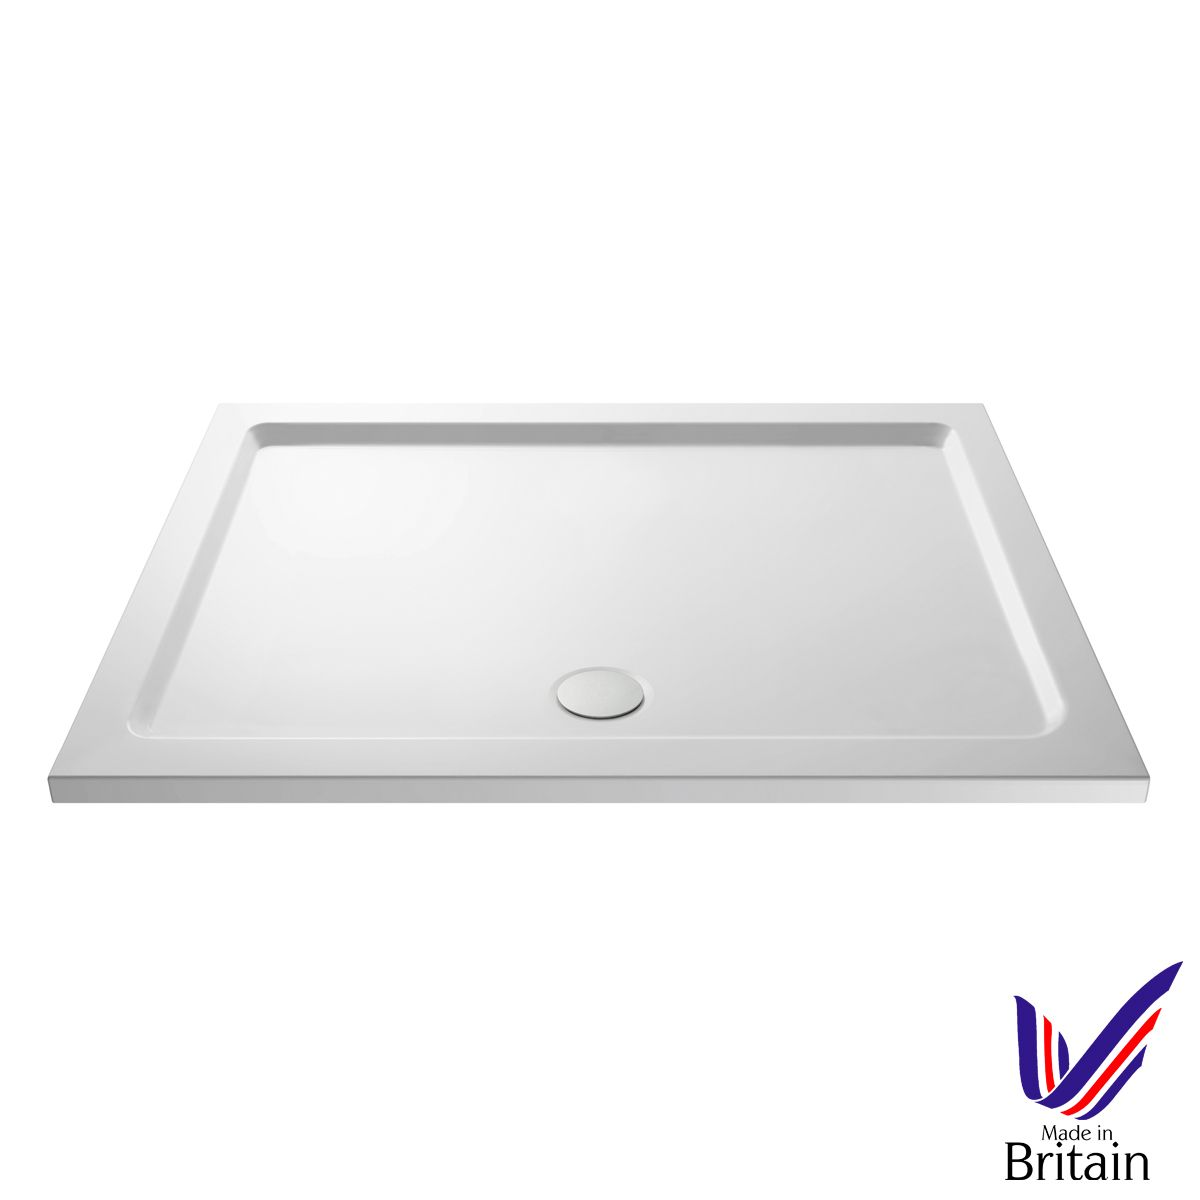 1300 x 800 Shower Tray Rectangular Low Profile by Pearlstone